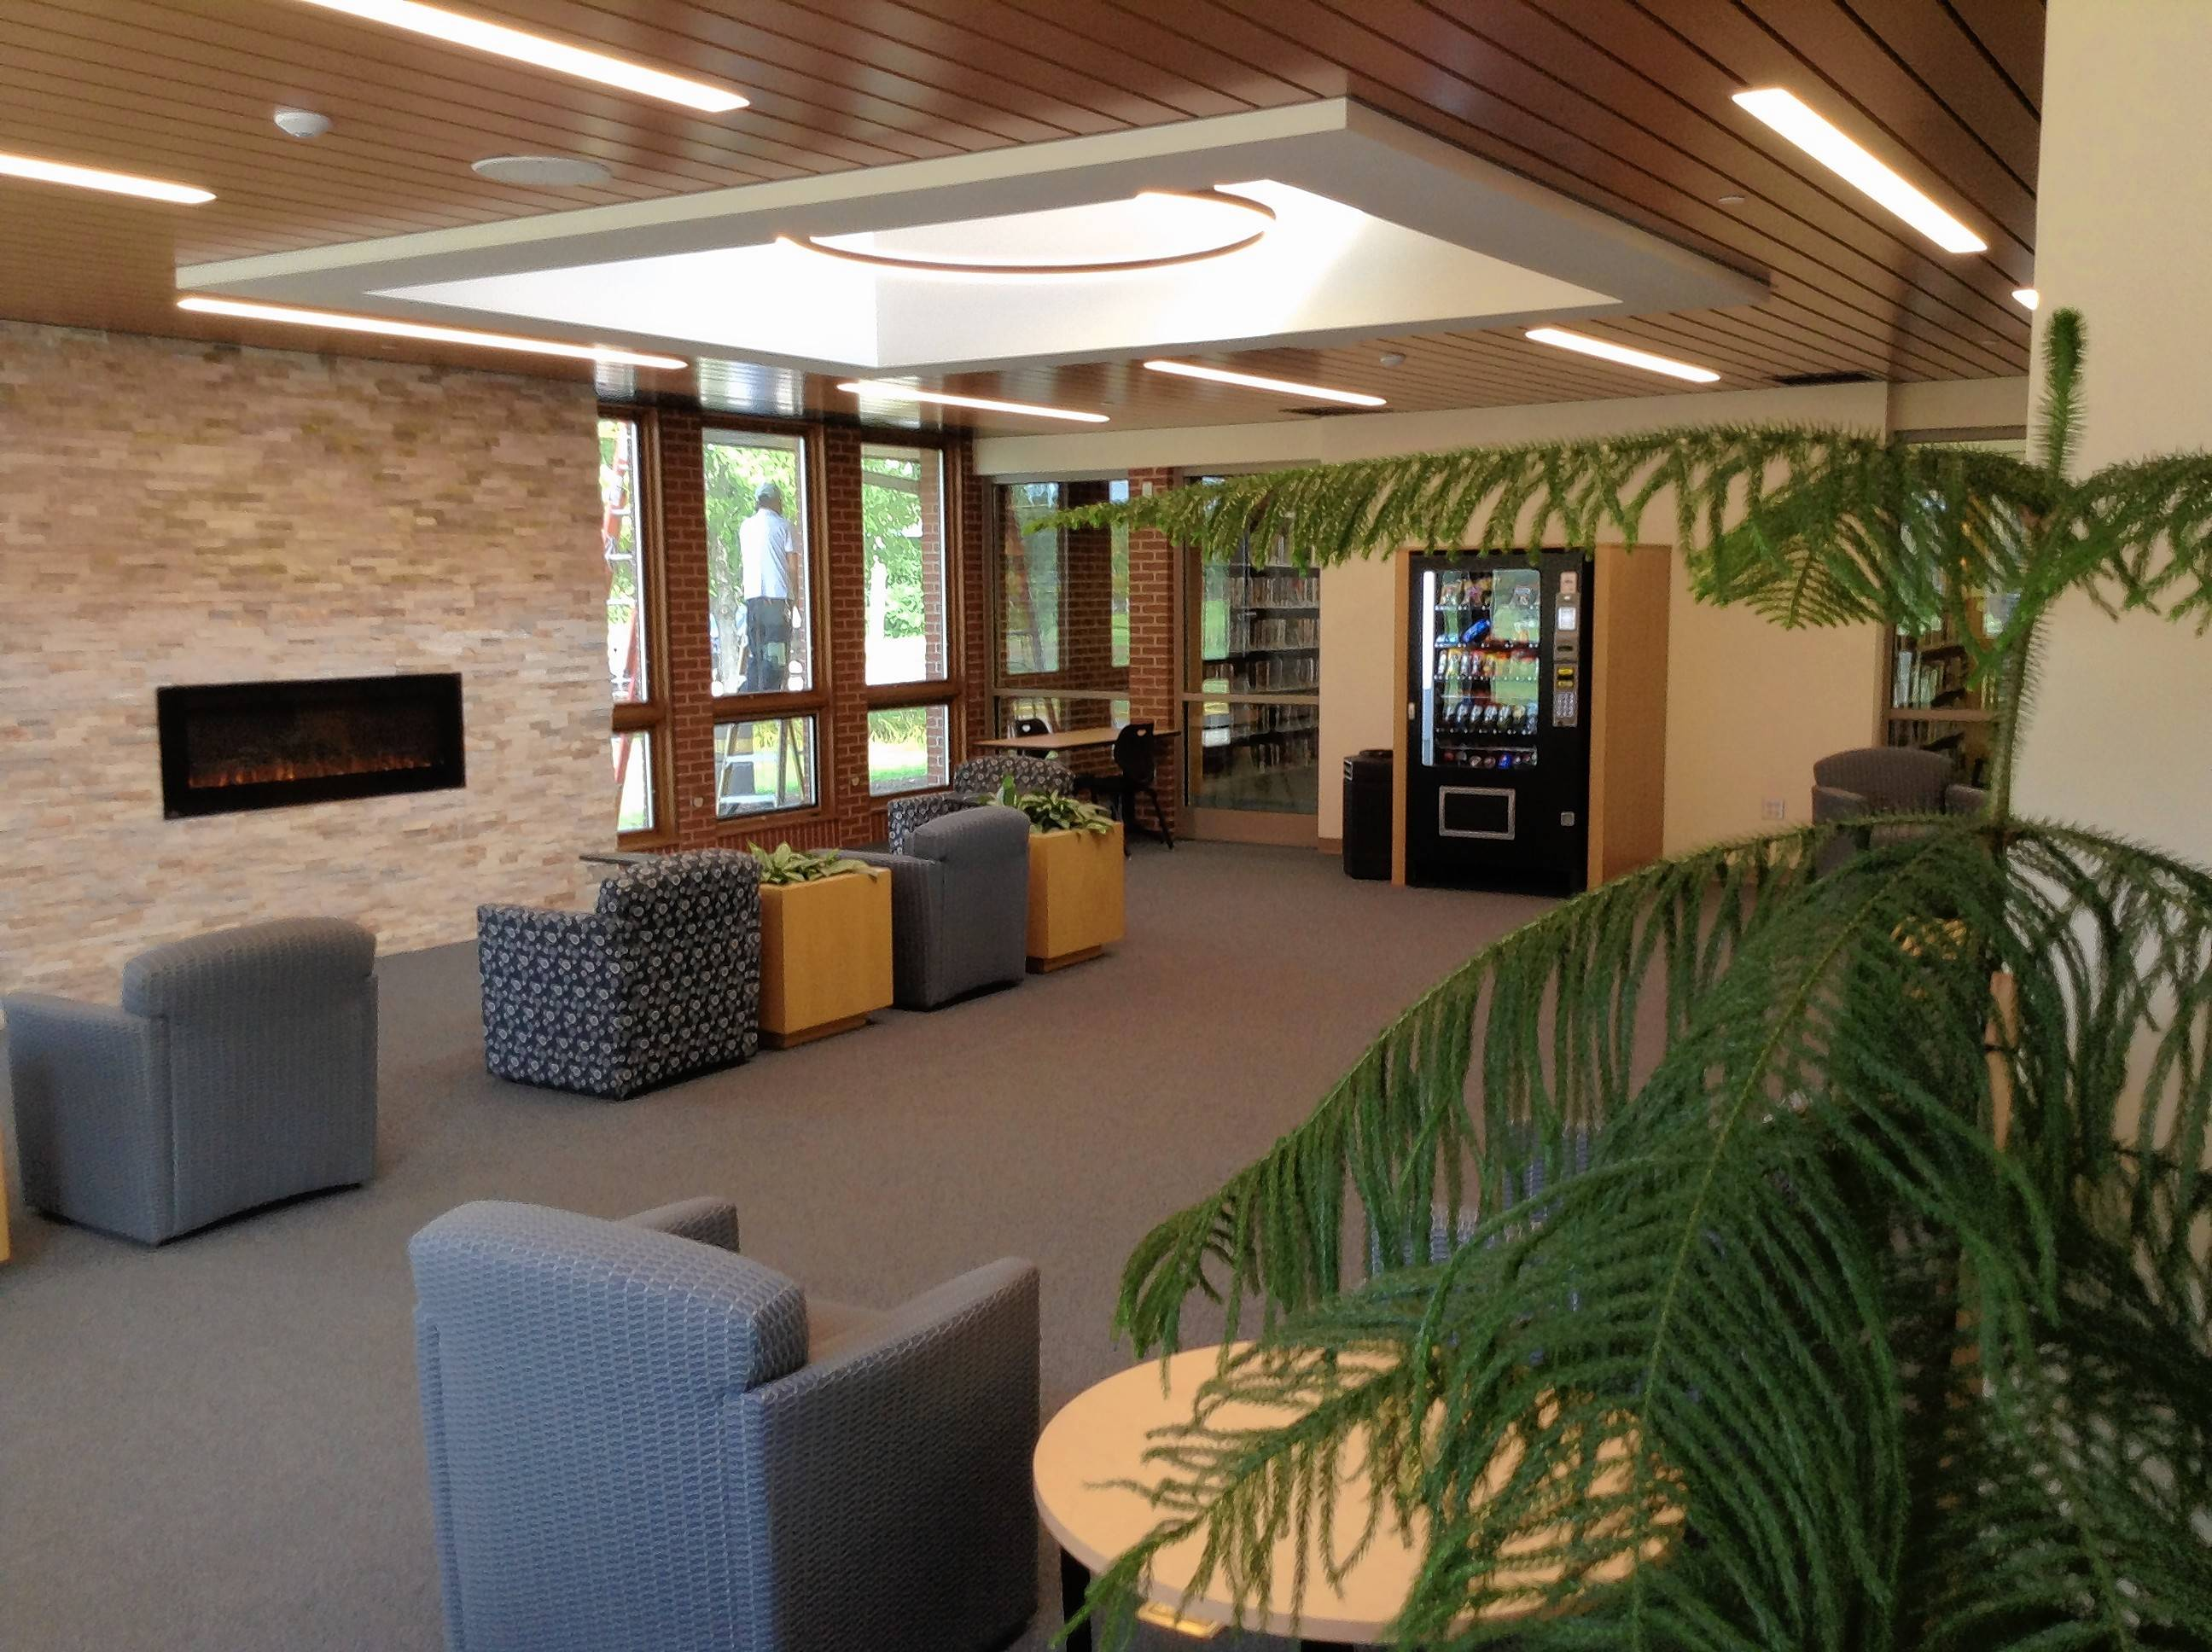 The Rolling Meadows Library's new Garden Lounge includes high-counter seating, charging stations for mobile devices, vending machines and an electronic fireplace.